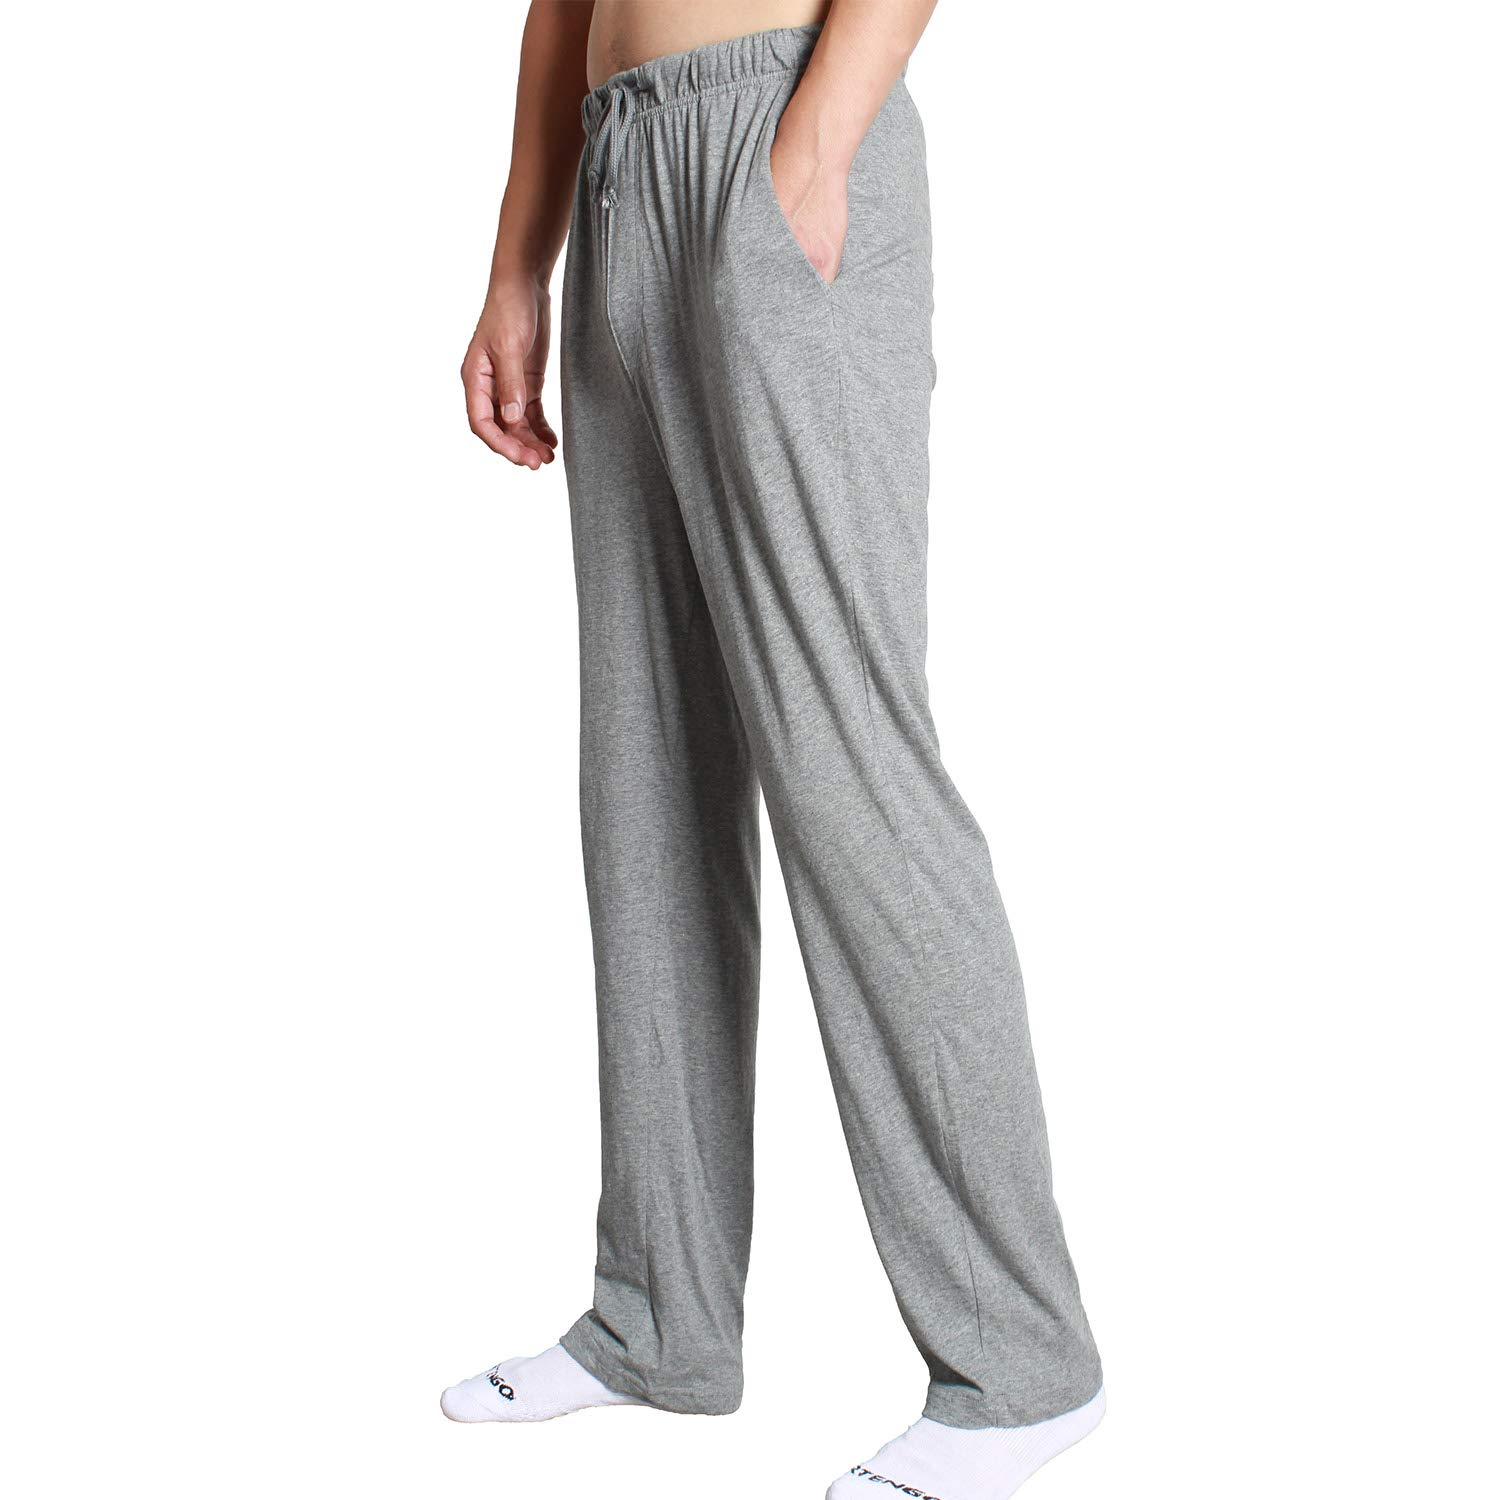 XINJU Men s Pajama Lounge Sleep Pants 100% Cotton Jersey Lightweight Super  Soft Bottoms Sleepwear with Drawstring at Amazon Men s Clothing store  d59f2e864